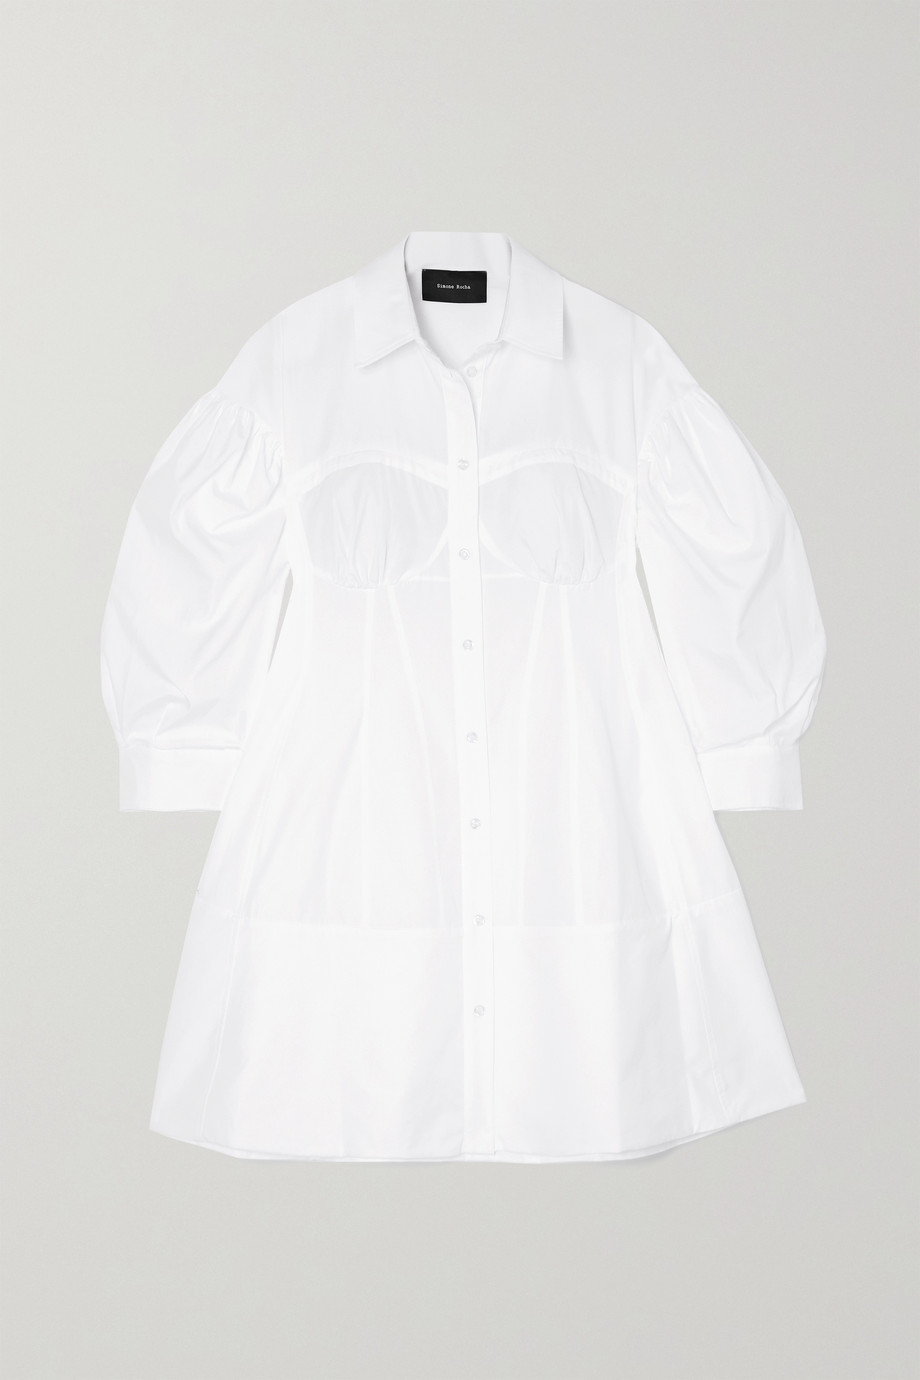 SIMONE ROCHA Corset cotton-poplin mini shirt dress